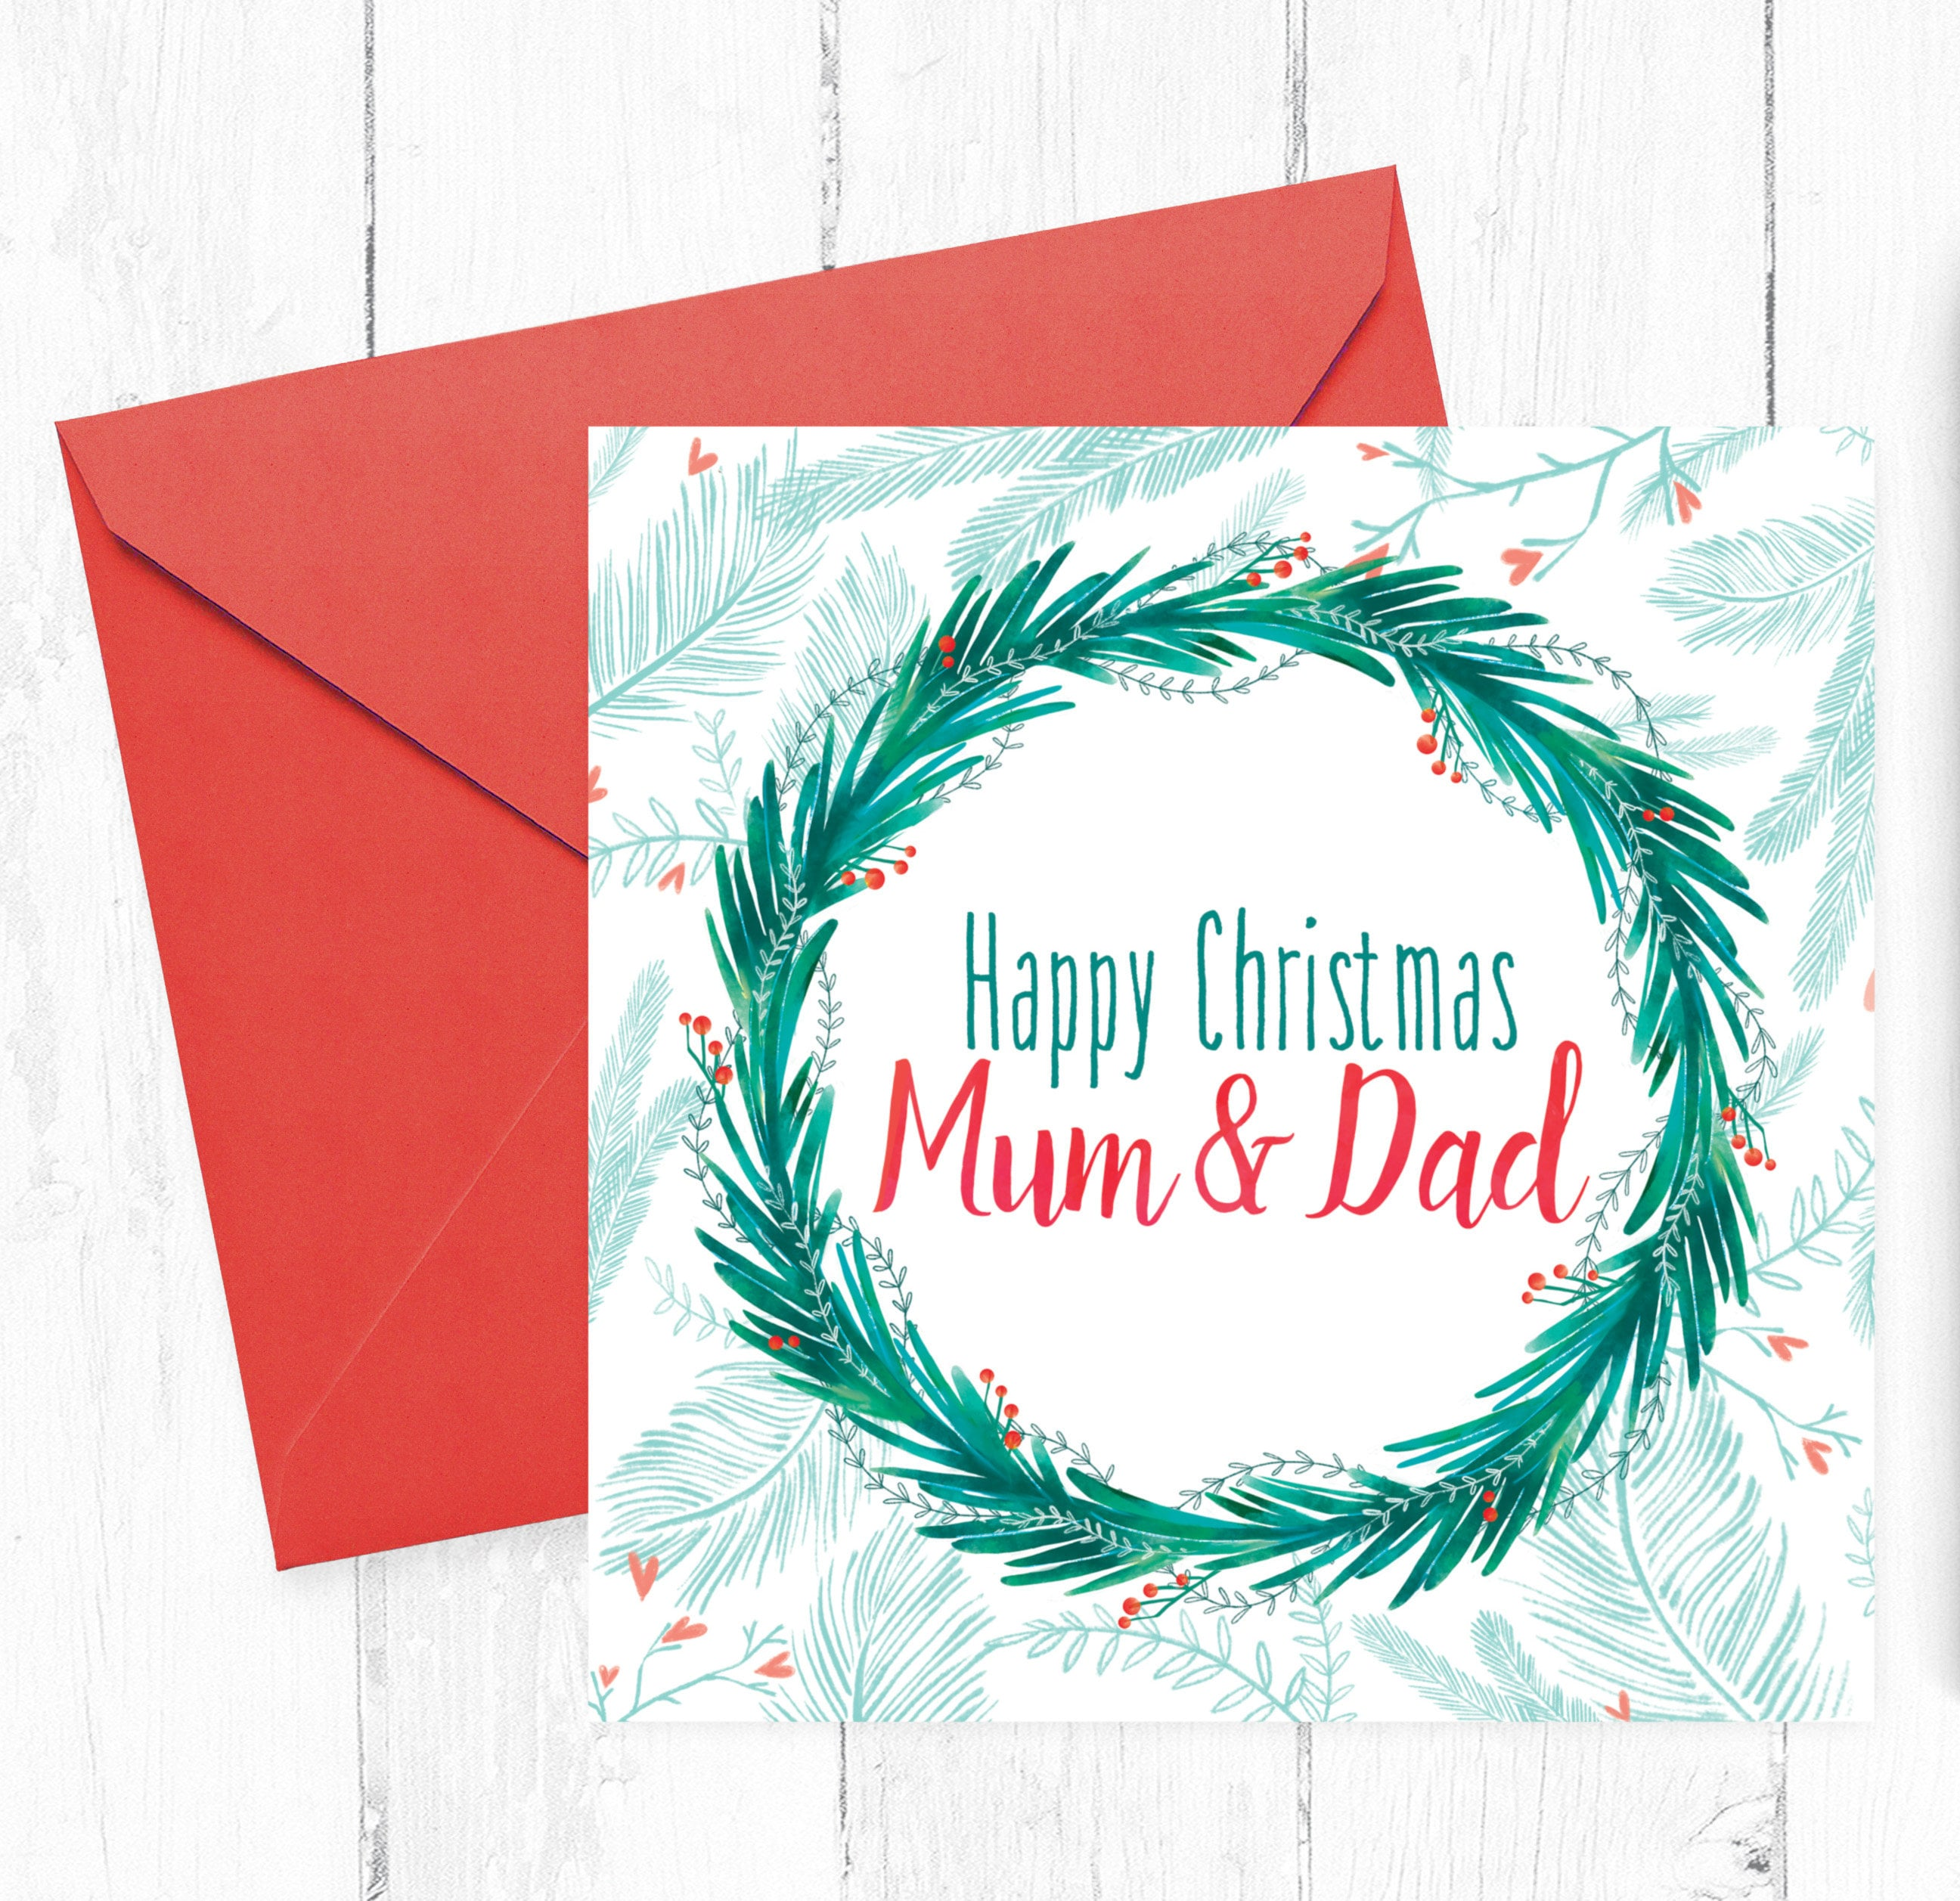 Mum and Dad Christmas Card Christmas cards for Mum and Dad | Etsy